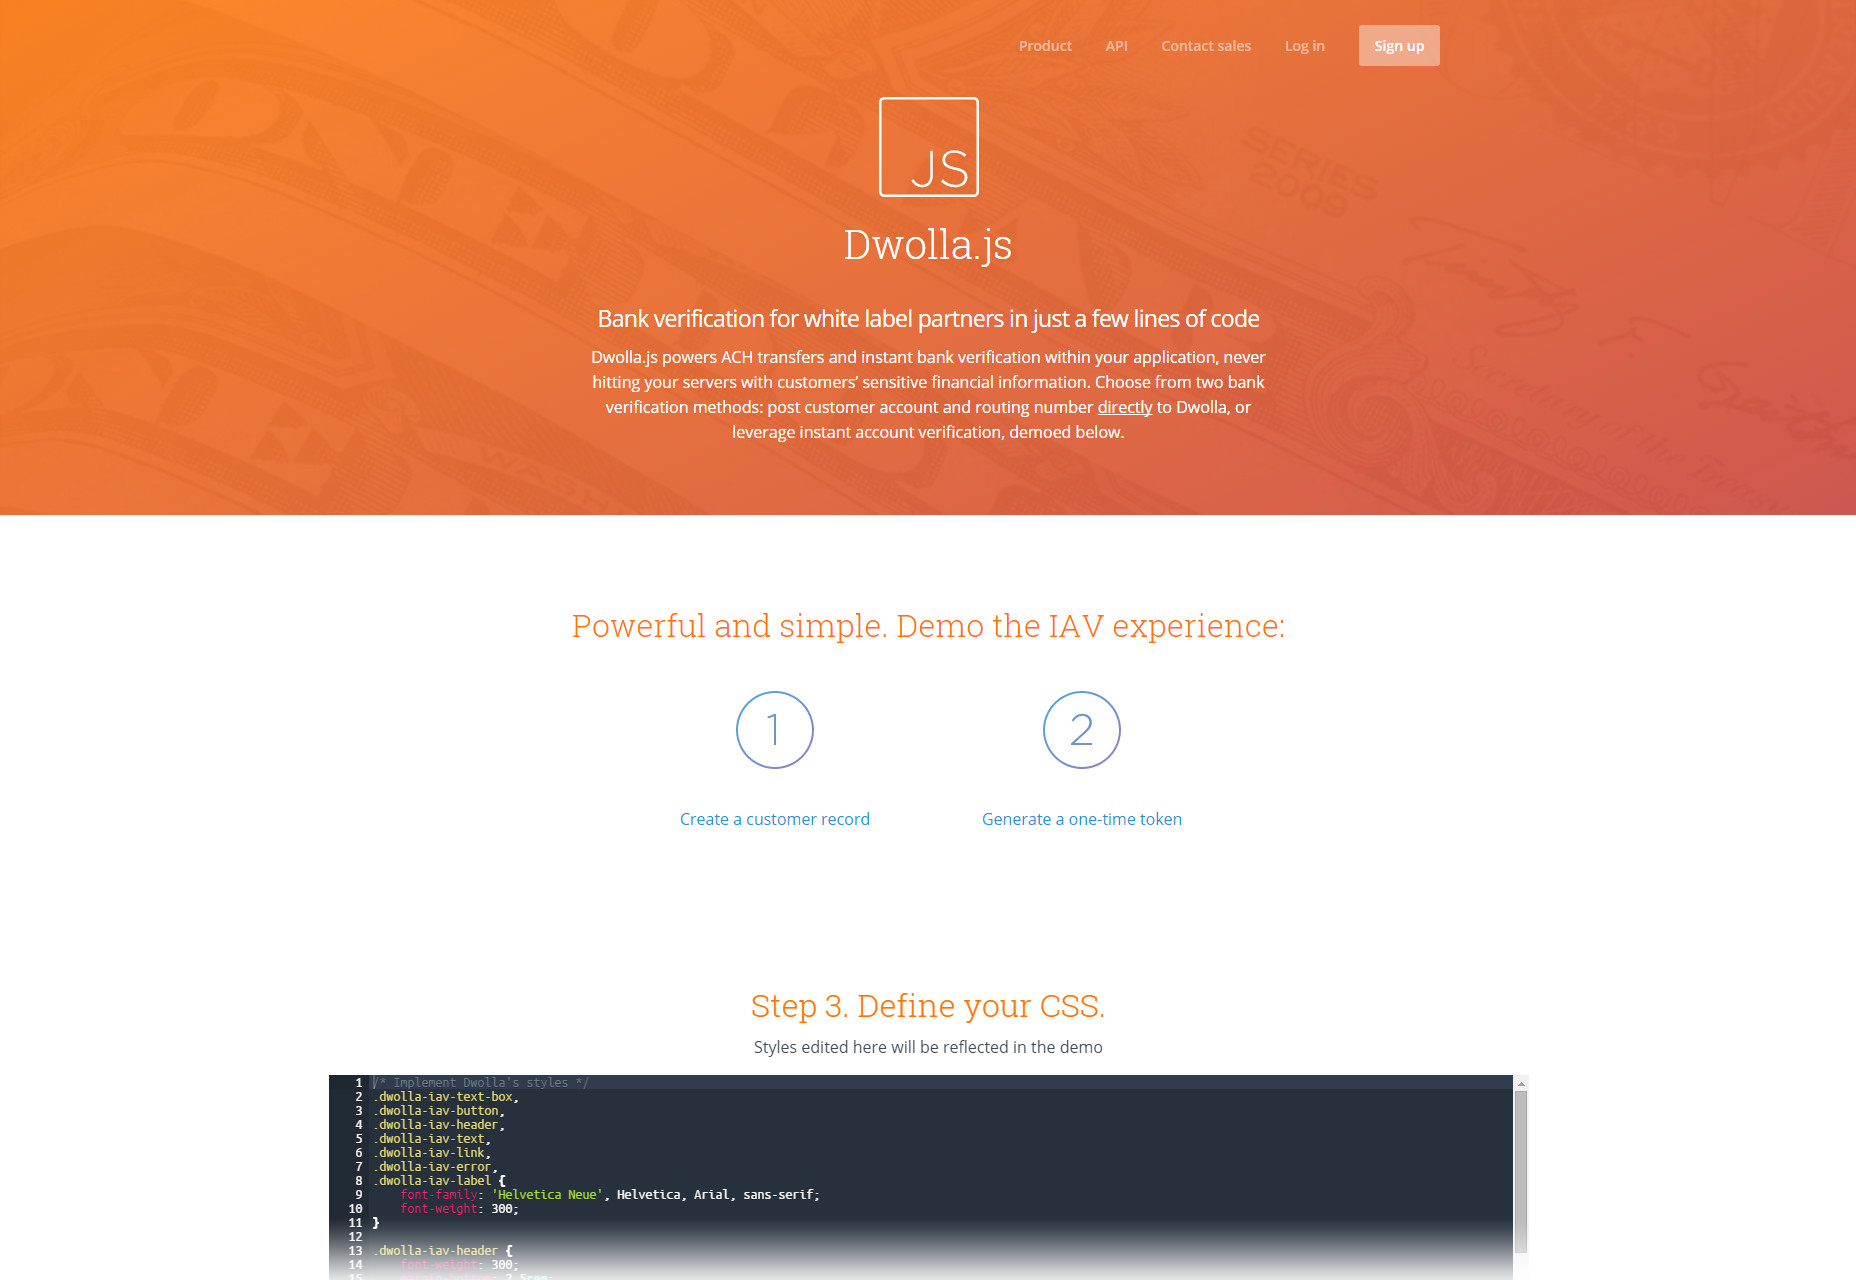 Dwolla.js: Short White Label Partner Bank Verification